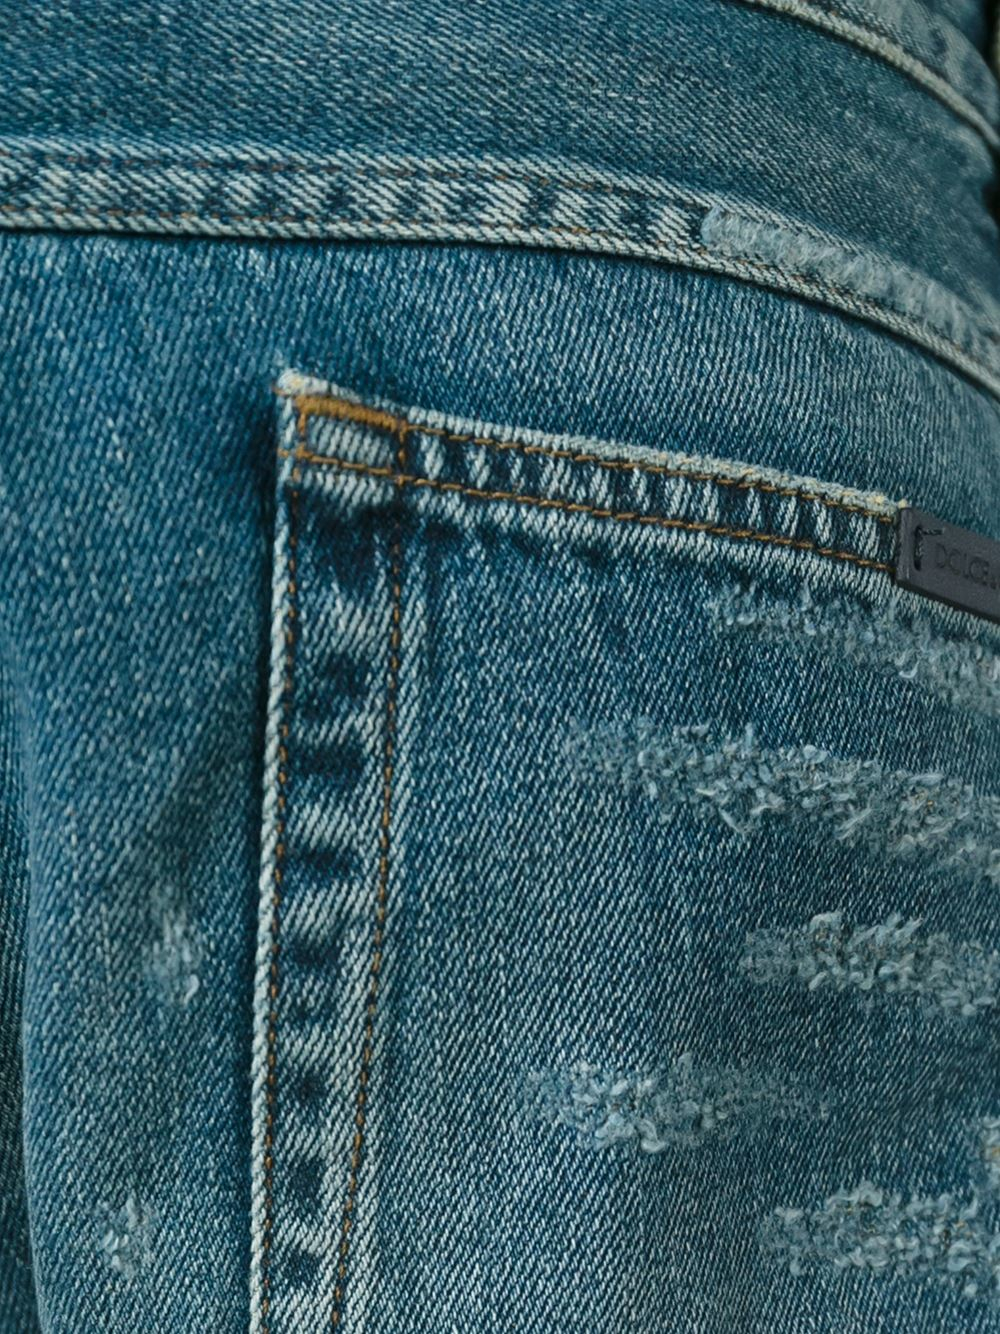 Dolce & Gabbana Denim Ripped Tapered Jeans in Blue for Men